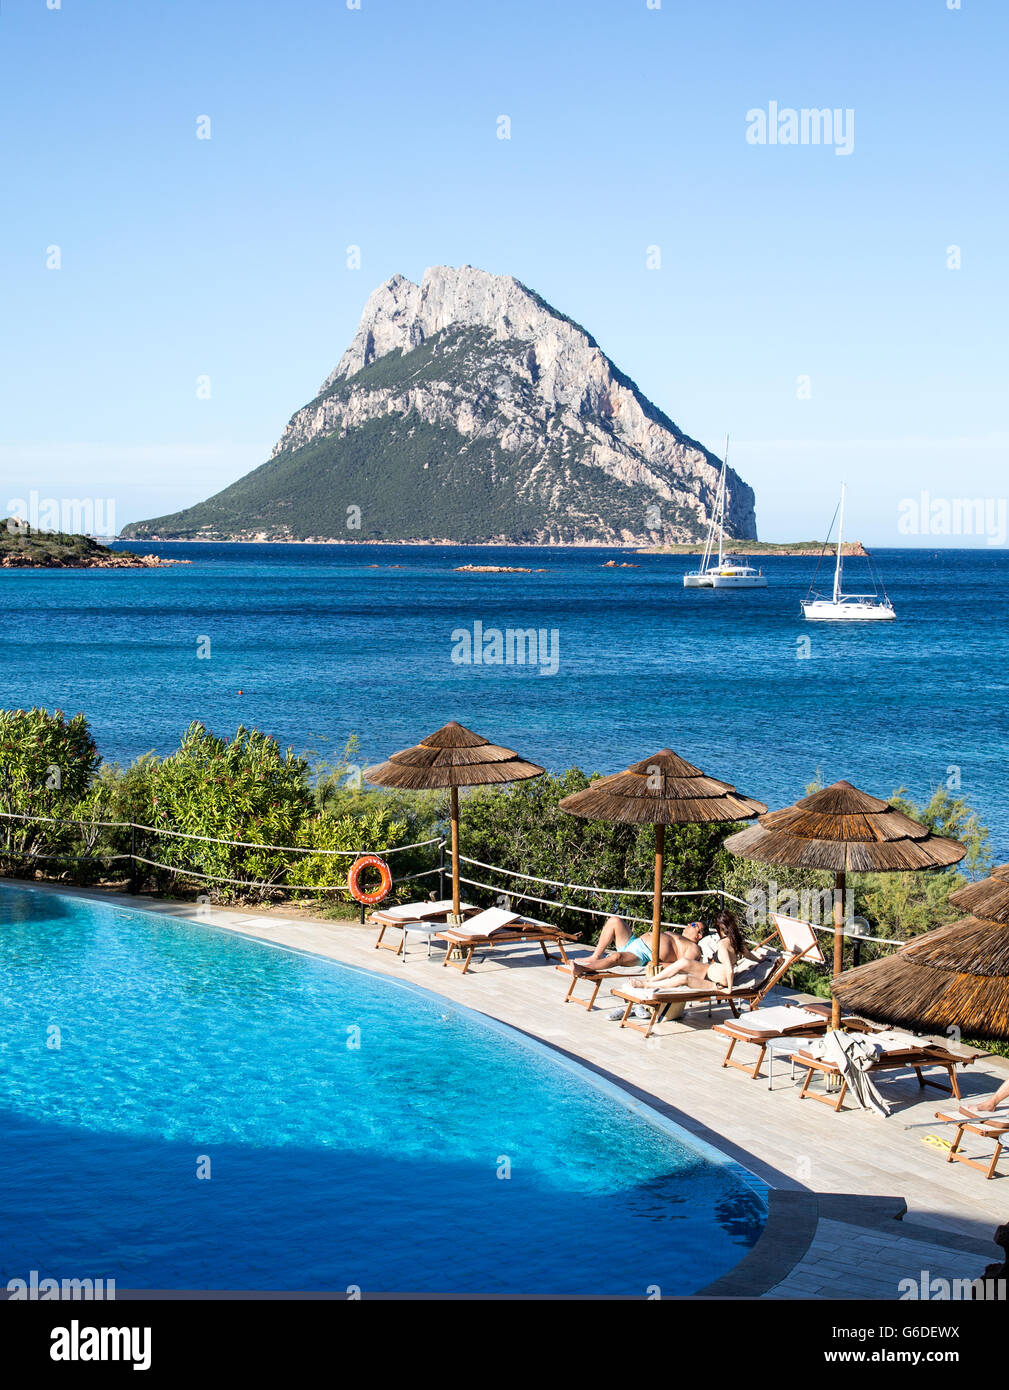 The Beach At Porto Paolo Sardinia Italy - Stock Image